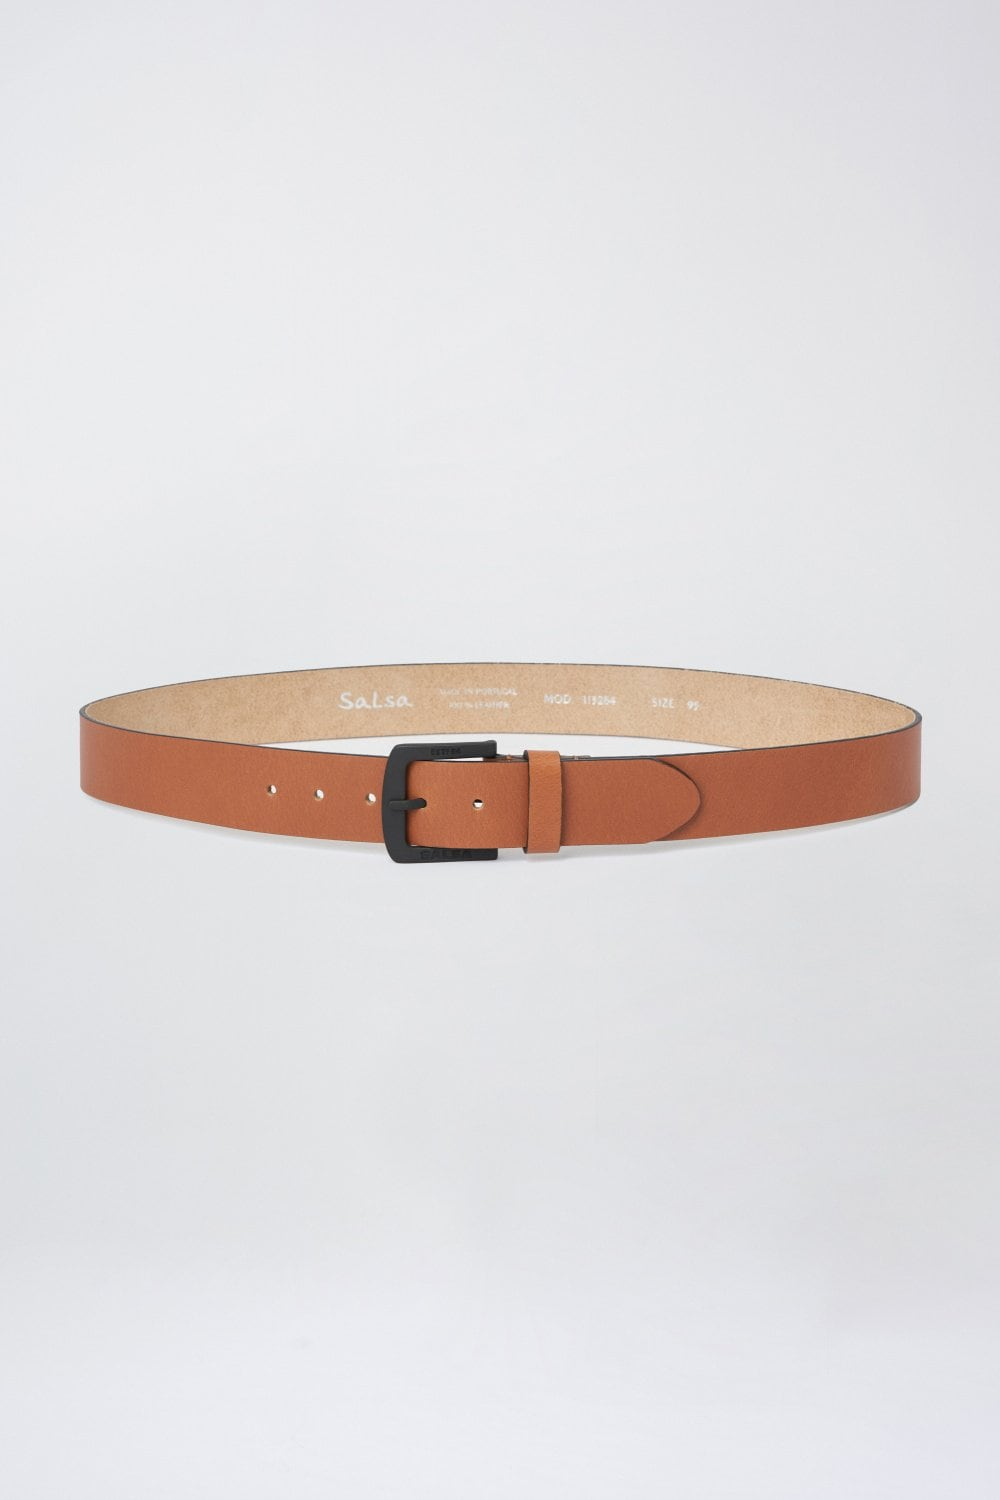 Leather belt - Salsa